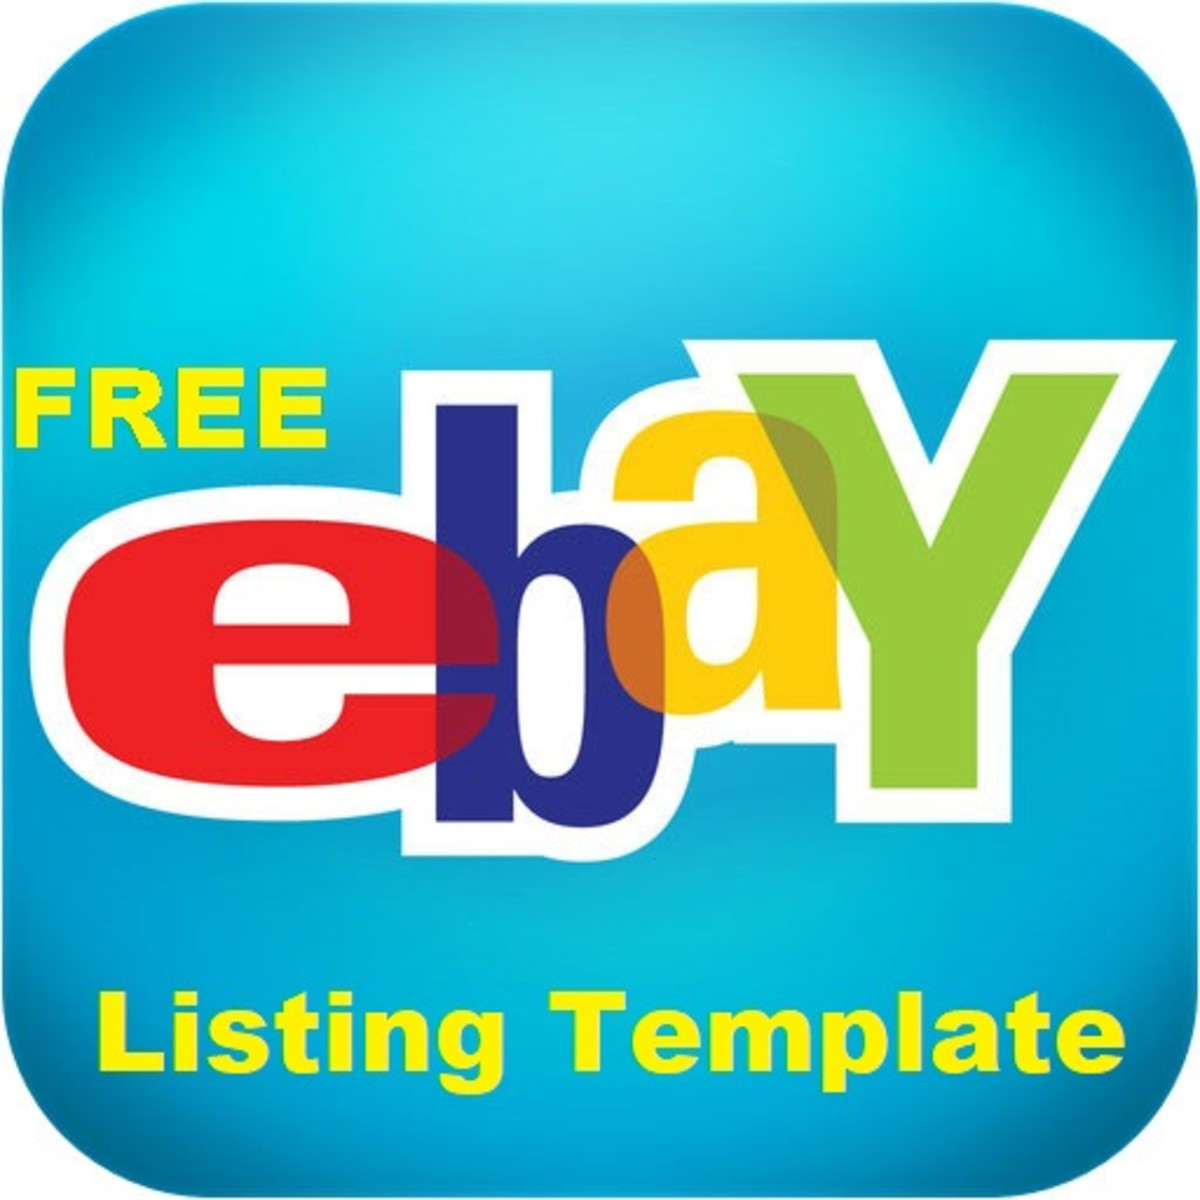 A Free Ebay Listing Template for New Sellers | ToughNickel